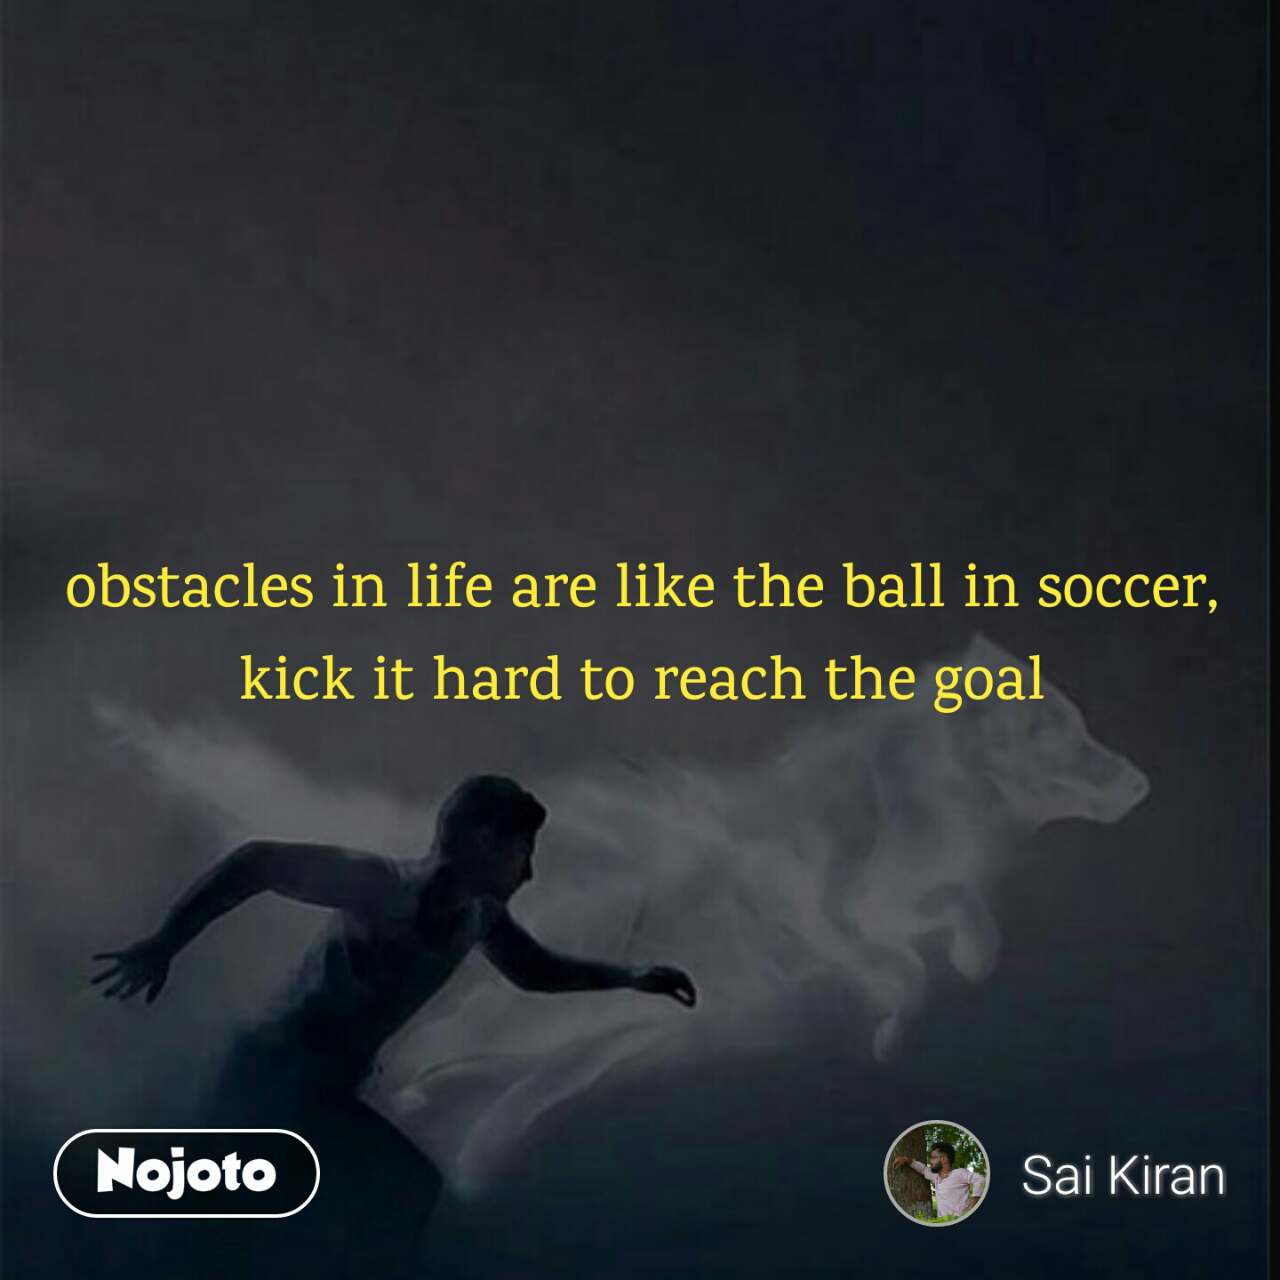 obstacles in life are like the ball in soccer, kick it hard to reach the goal